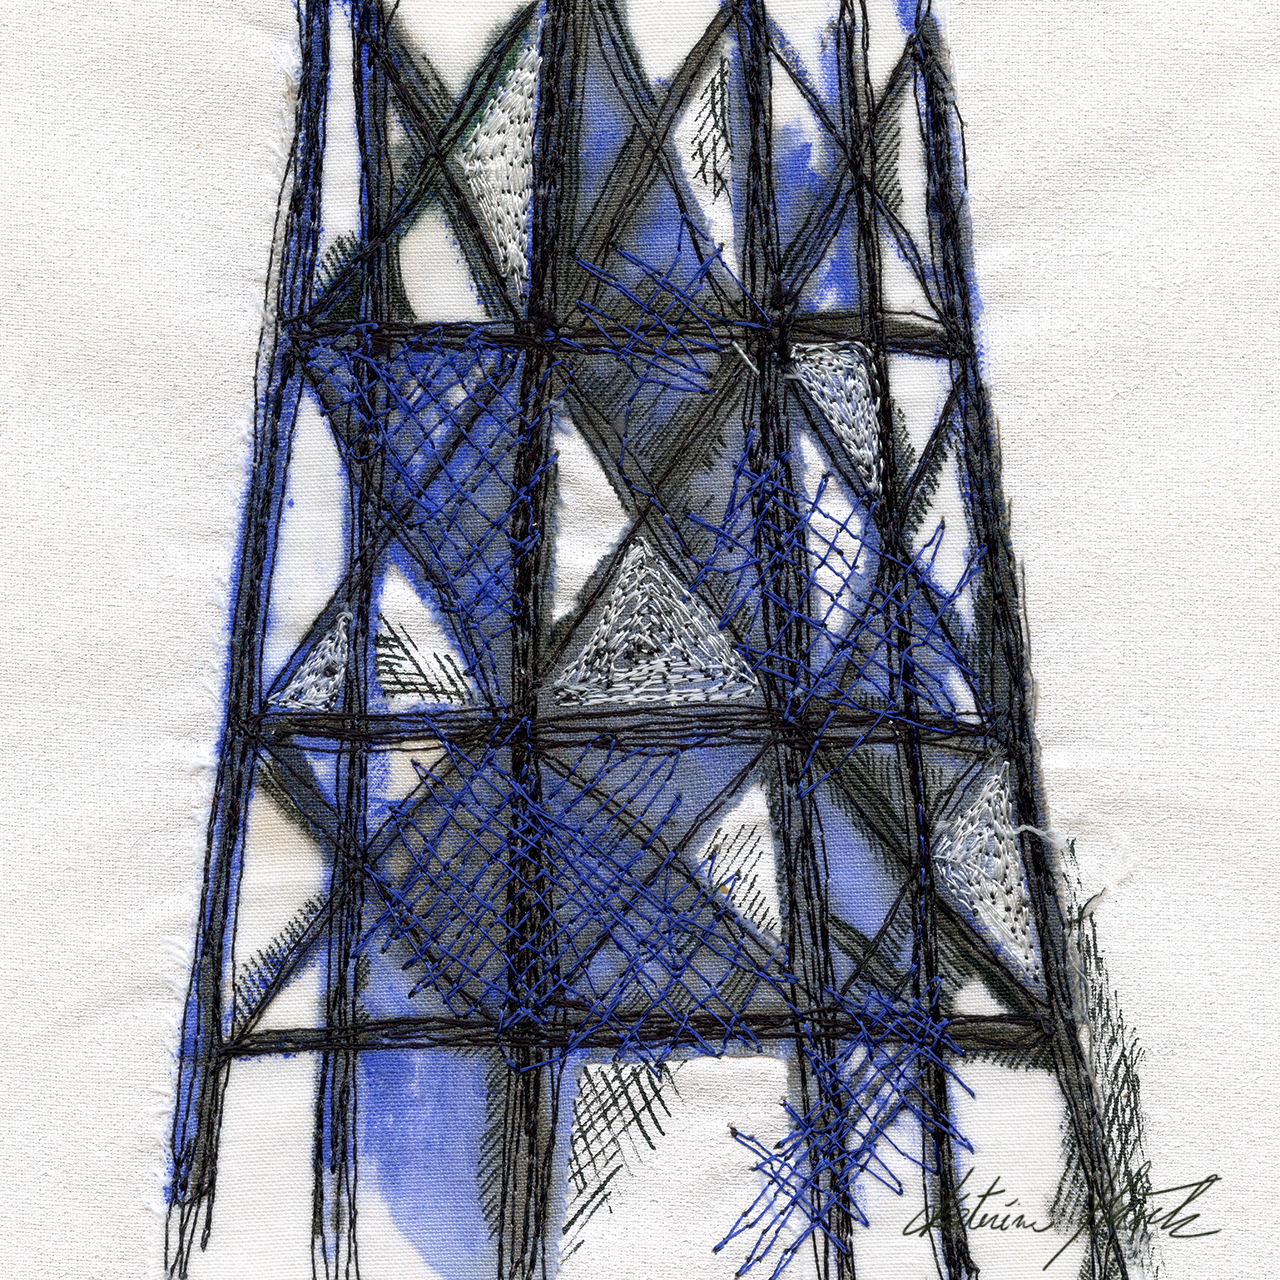 A textile artwork titled Standing Tall created by Katerina Hasek.